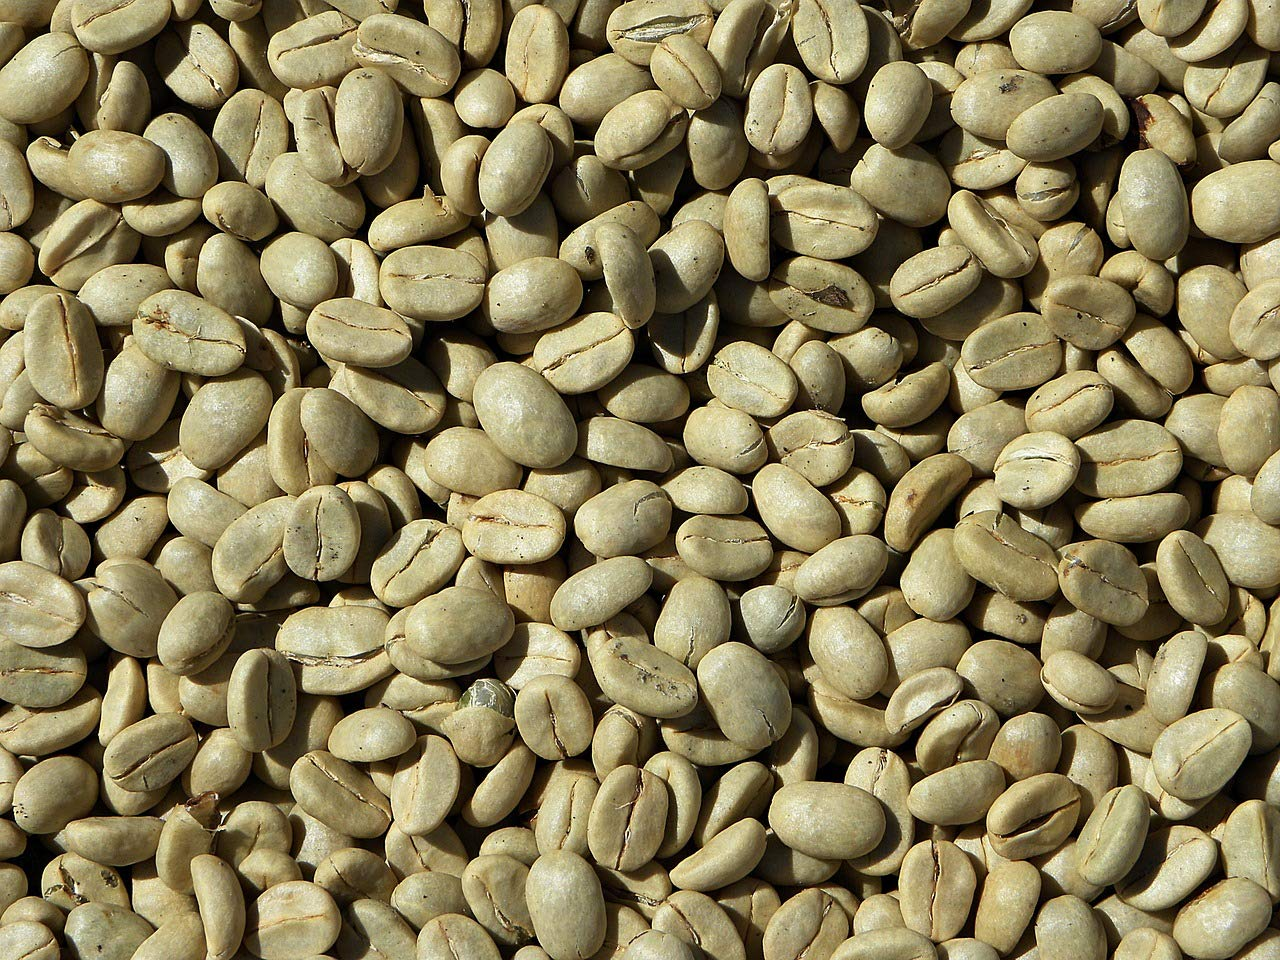 5 lbs Guatemala Green Coffee Beans - MICRO LOT, Green (unroasted) Coffee Beans, fair trade, eco friendly